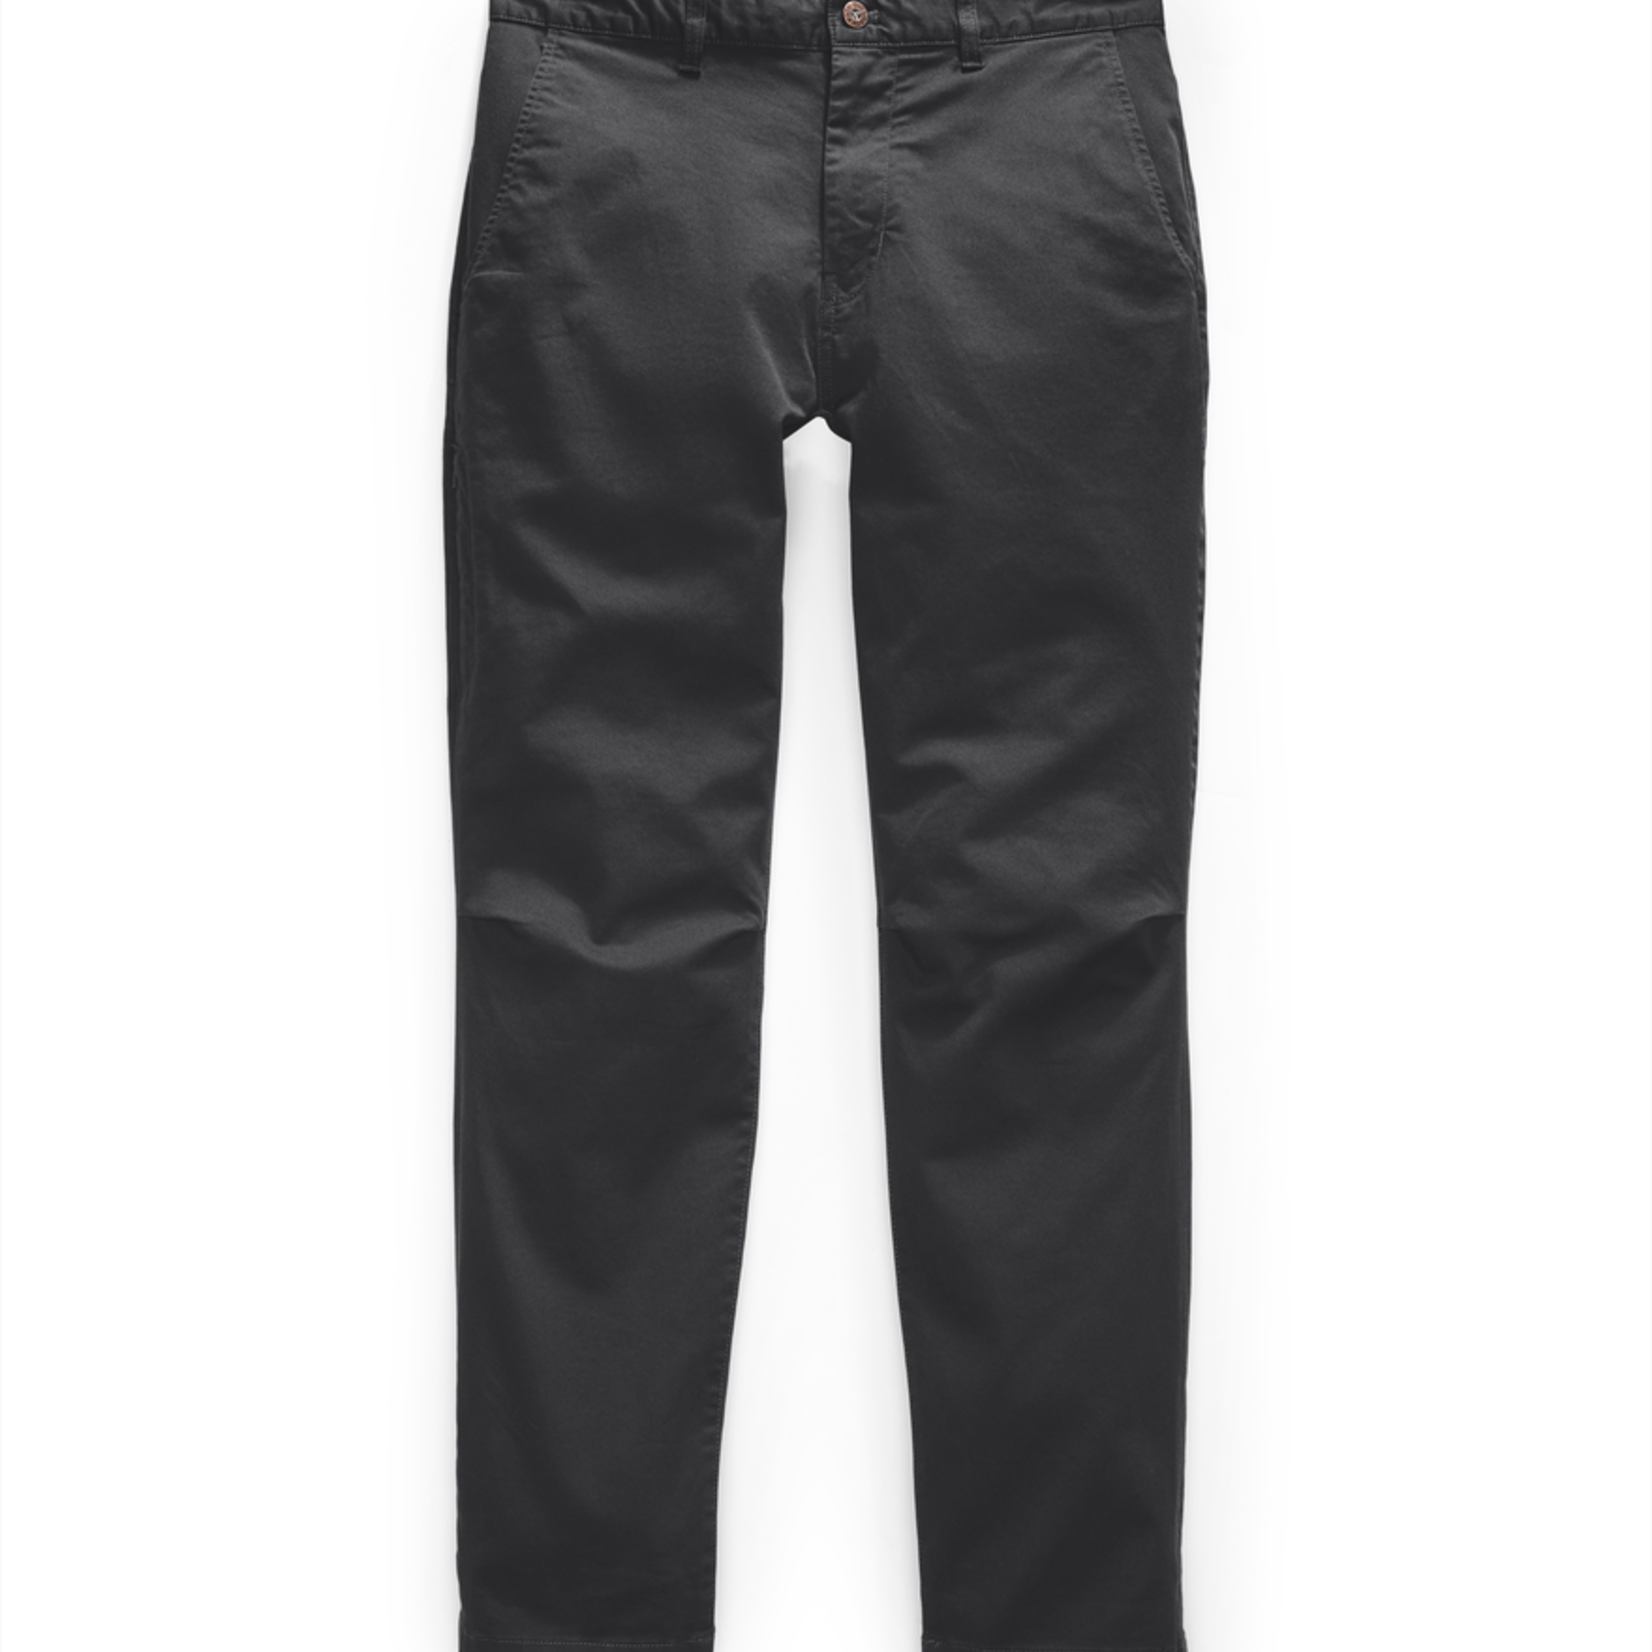 THE NORTH FACE M MOTION PANT - P-115974